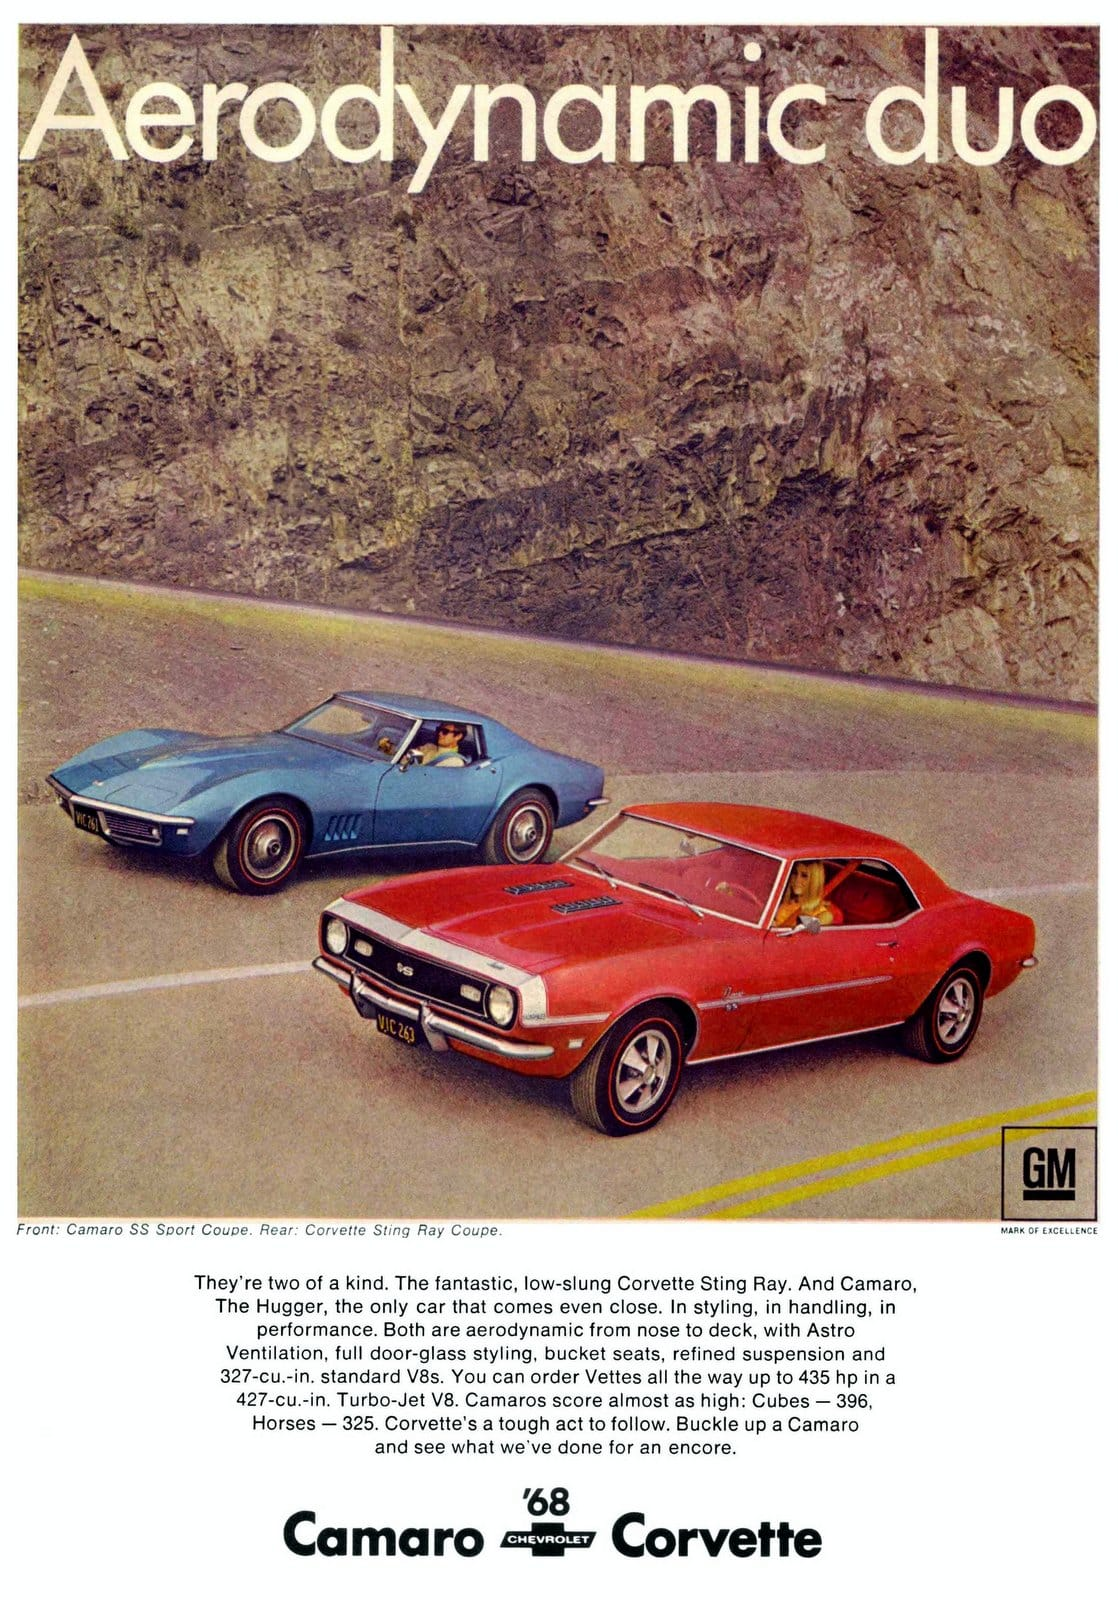 1968 Camaro SS Sport Coupe and Corvette Sting Ray Coupe.